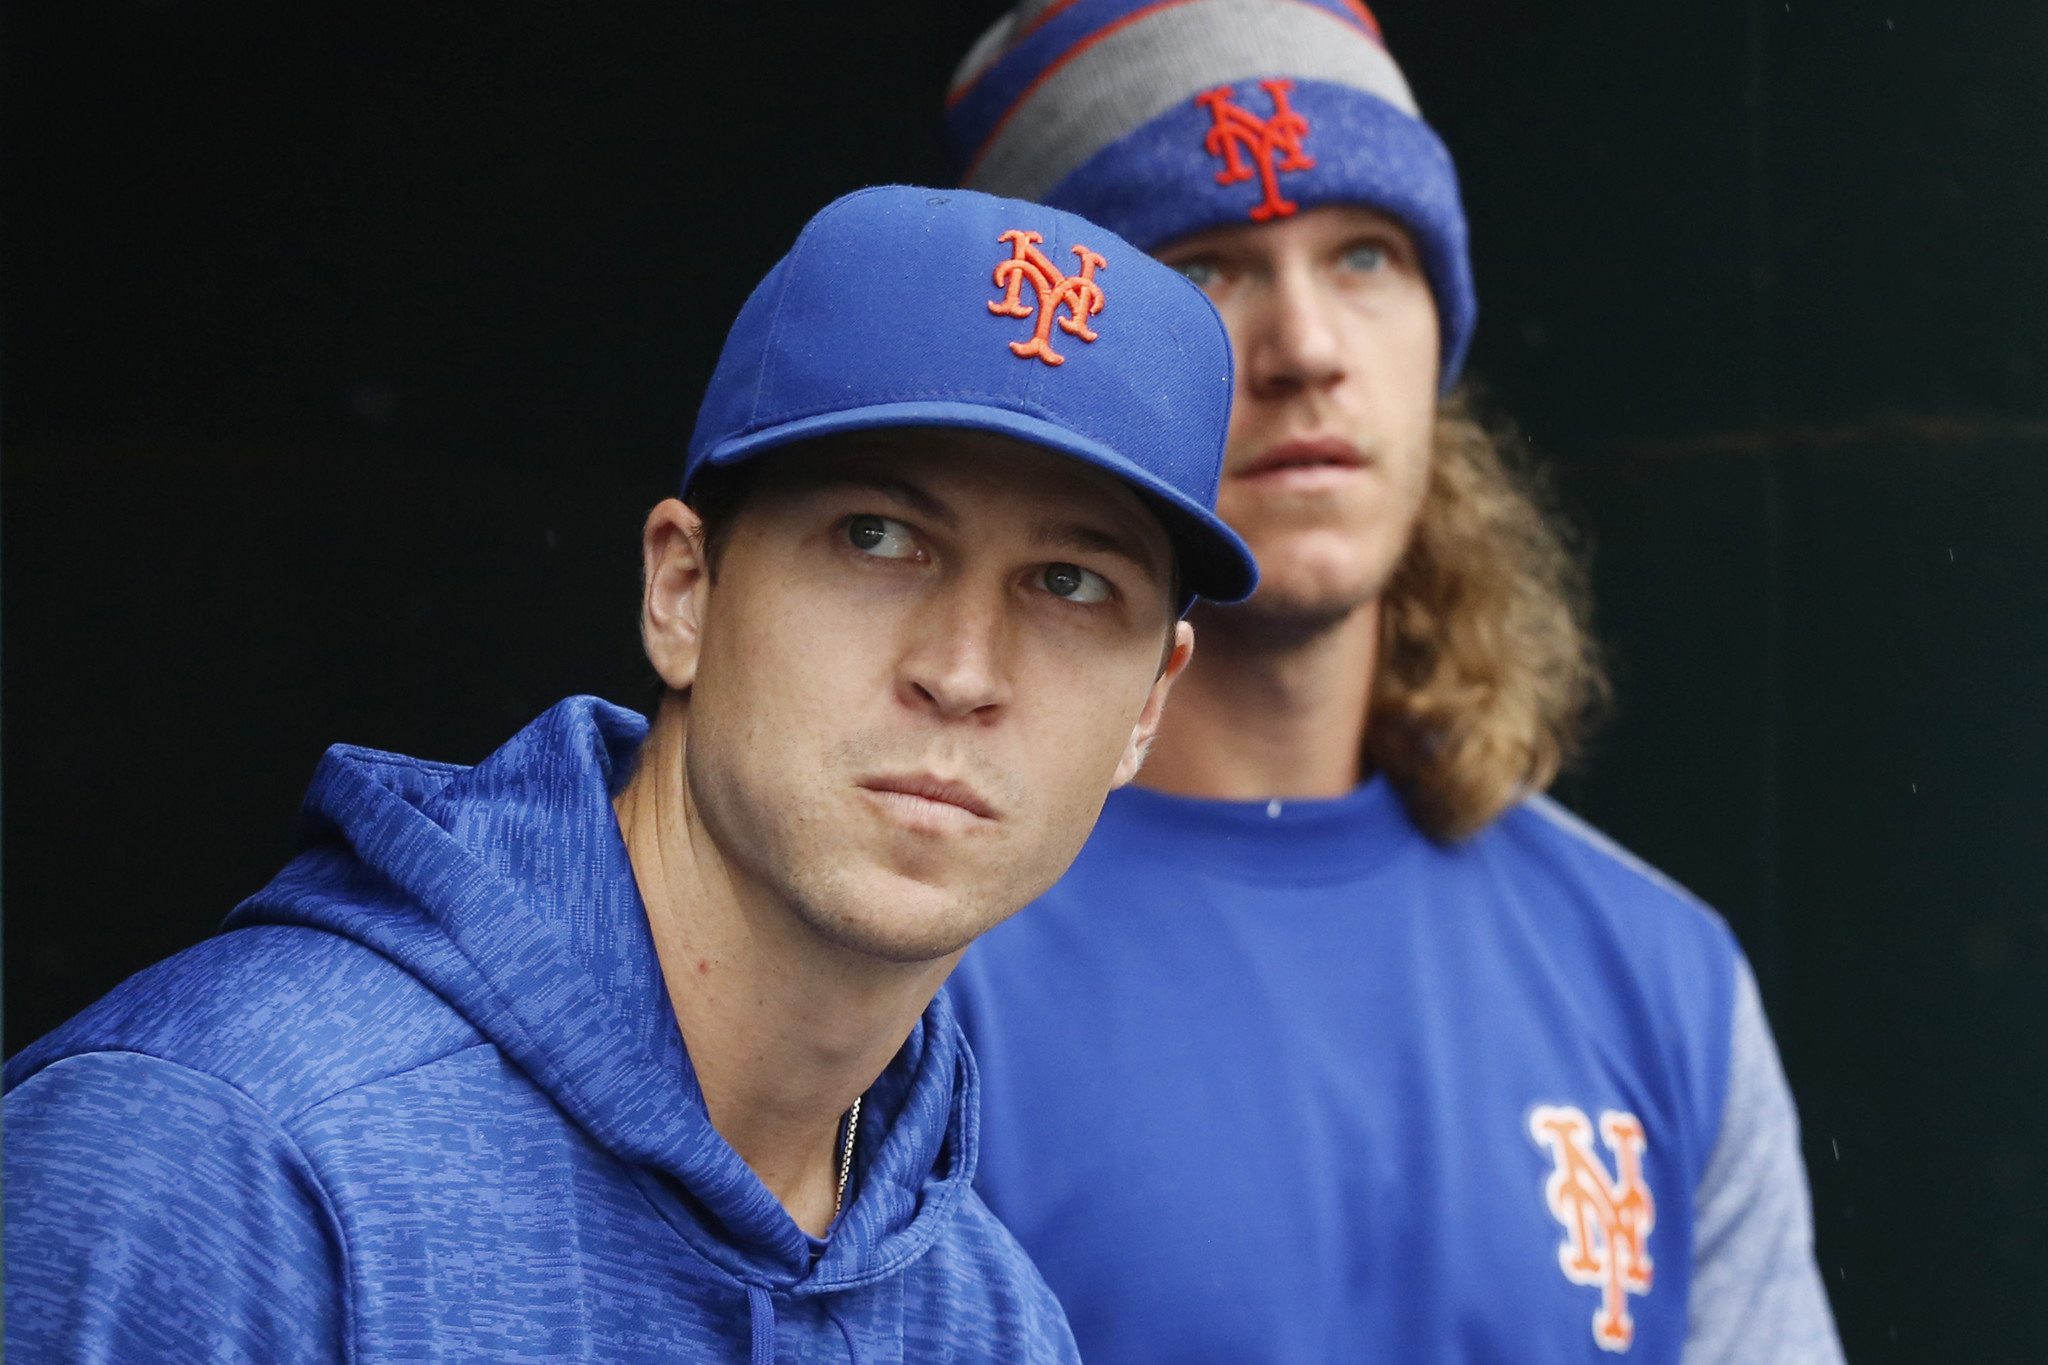 Mets could start Jacob deGrom in final game of season ... if it matters